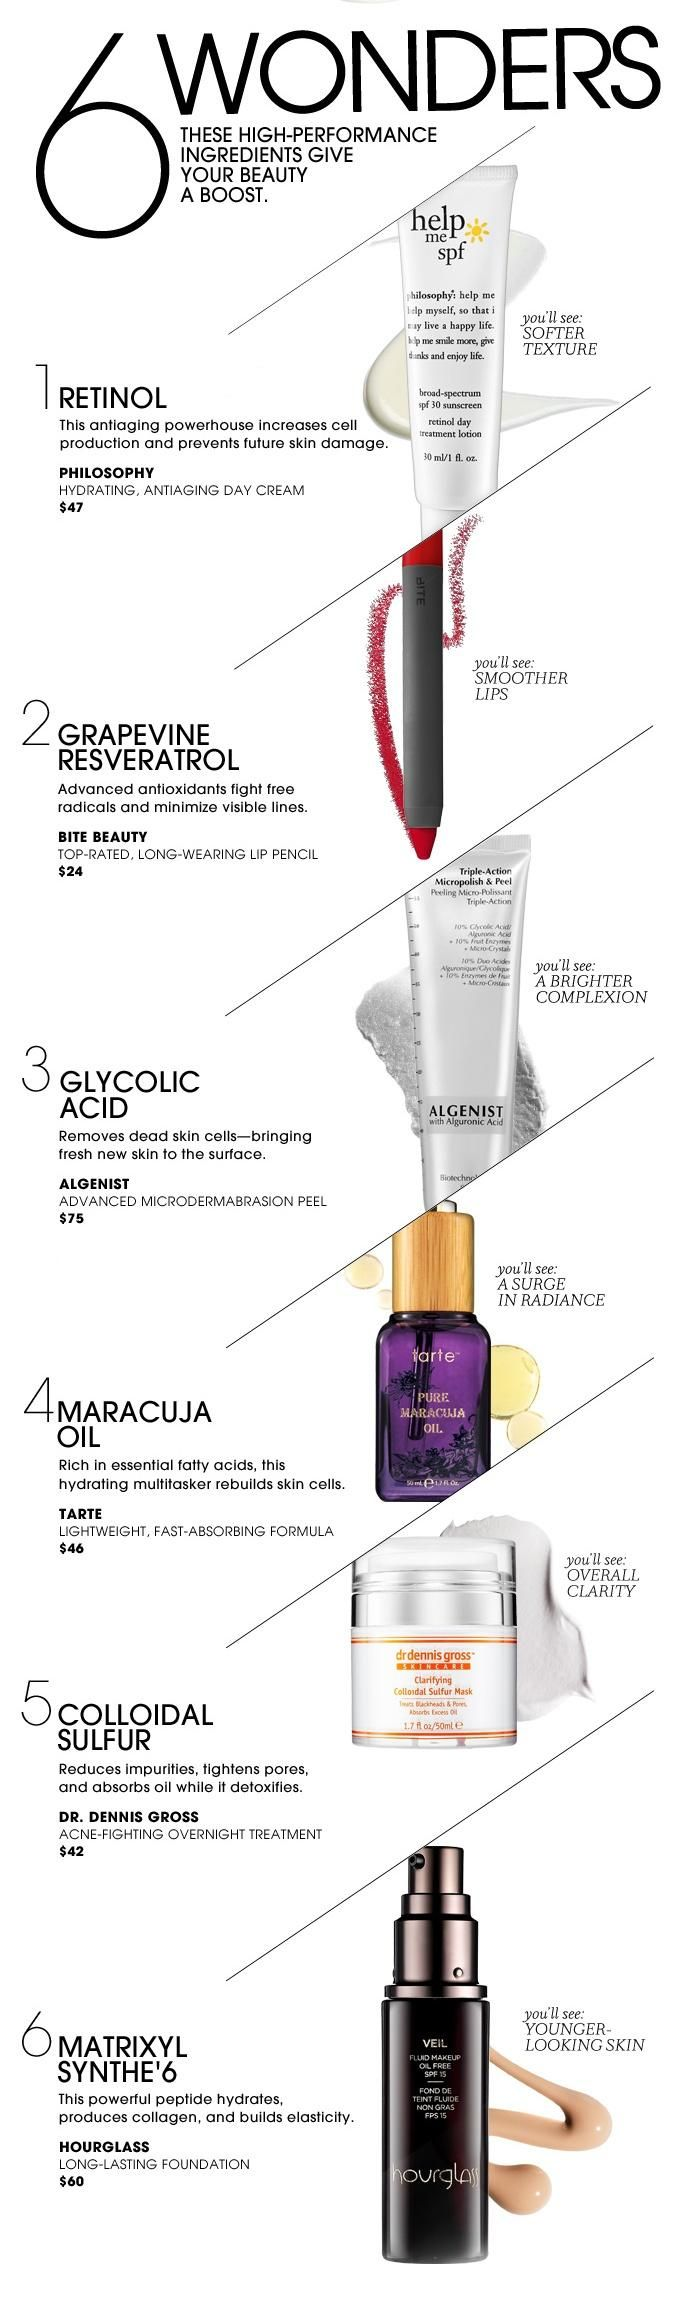 These high-performance ingredients give your beauty a boost.